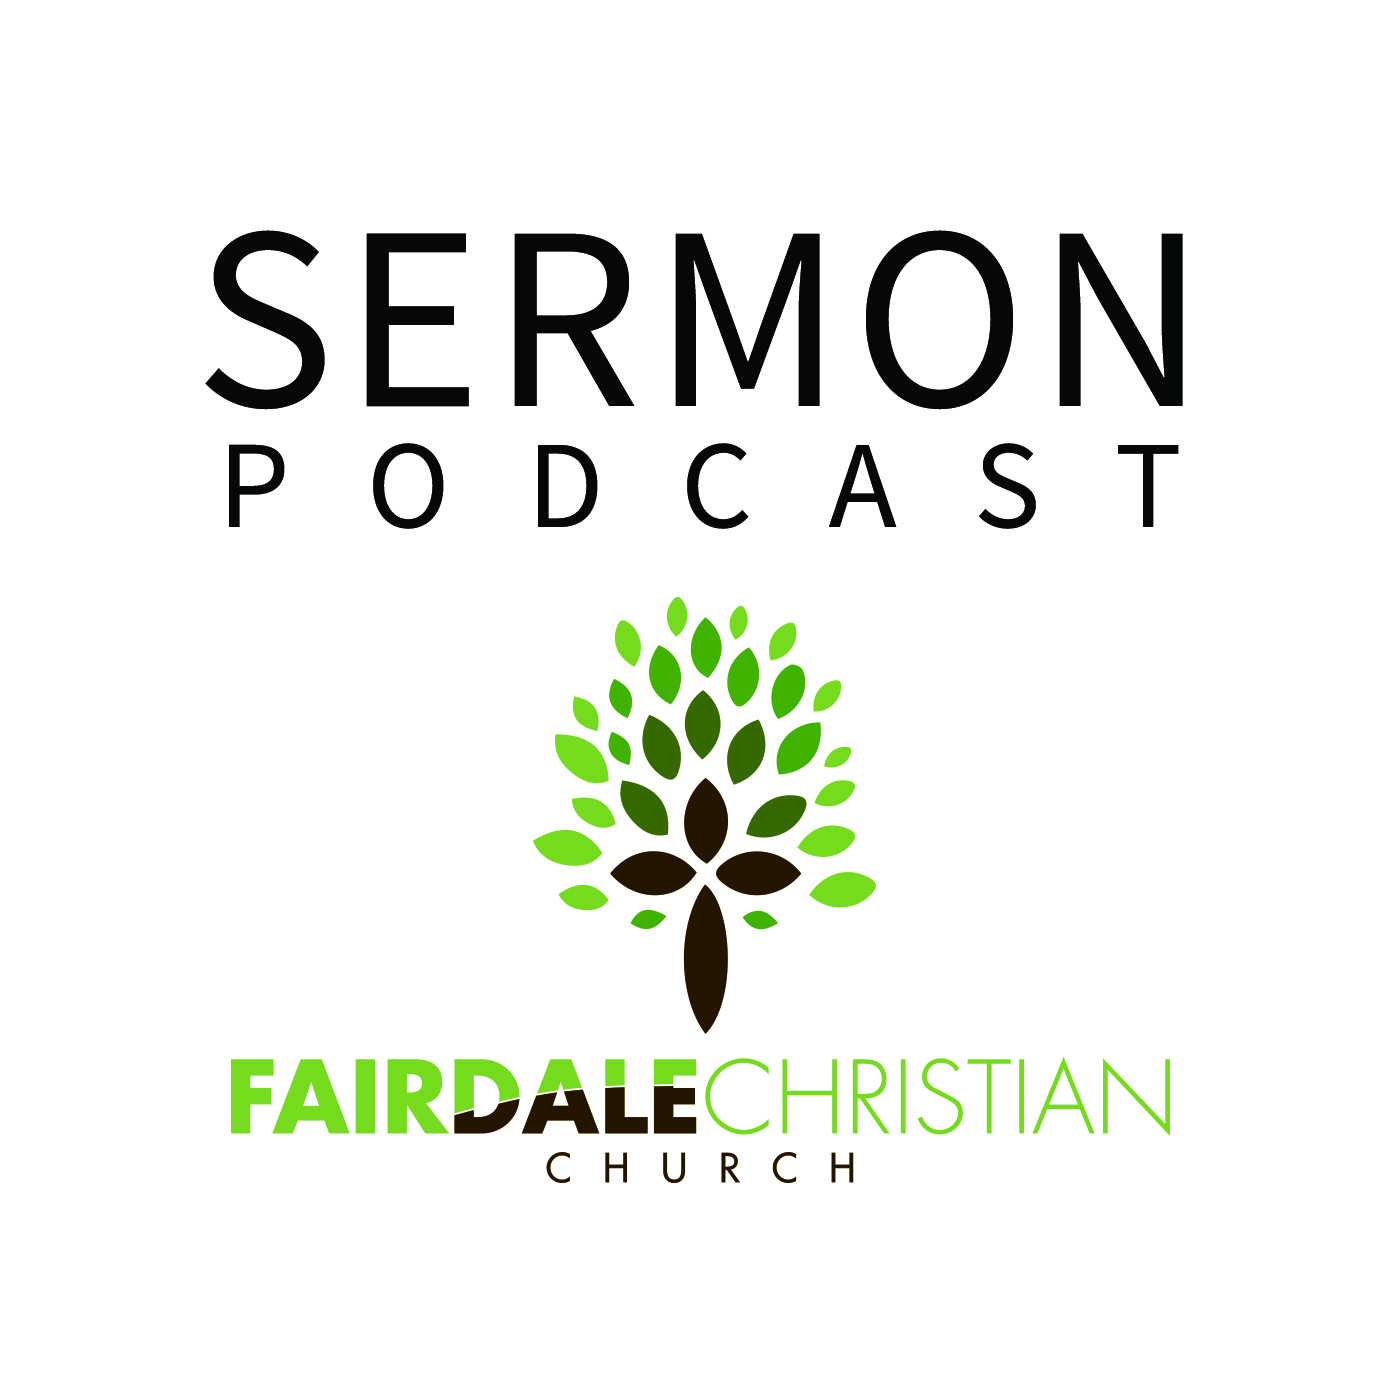 Fairdale Christian Church Sermon Podcast